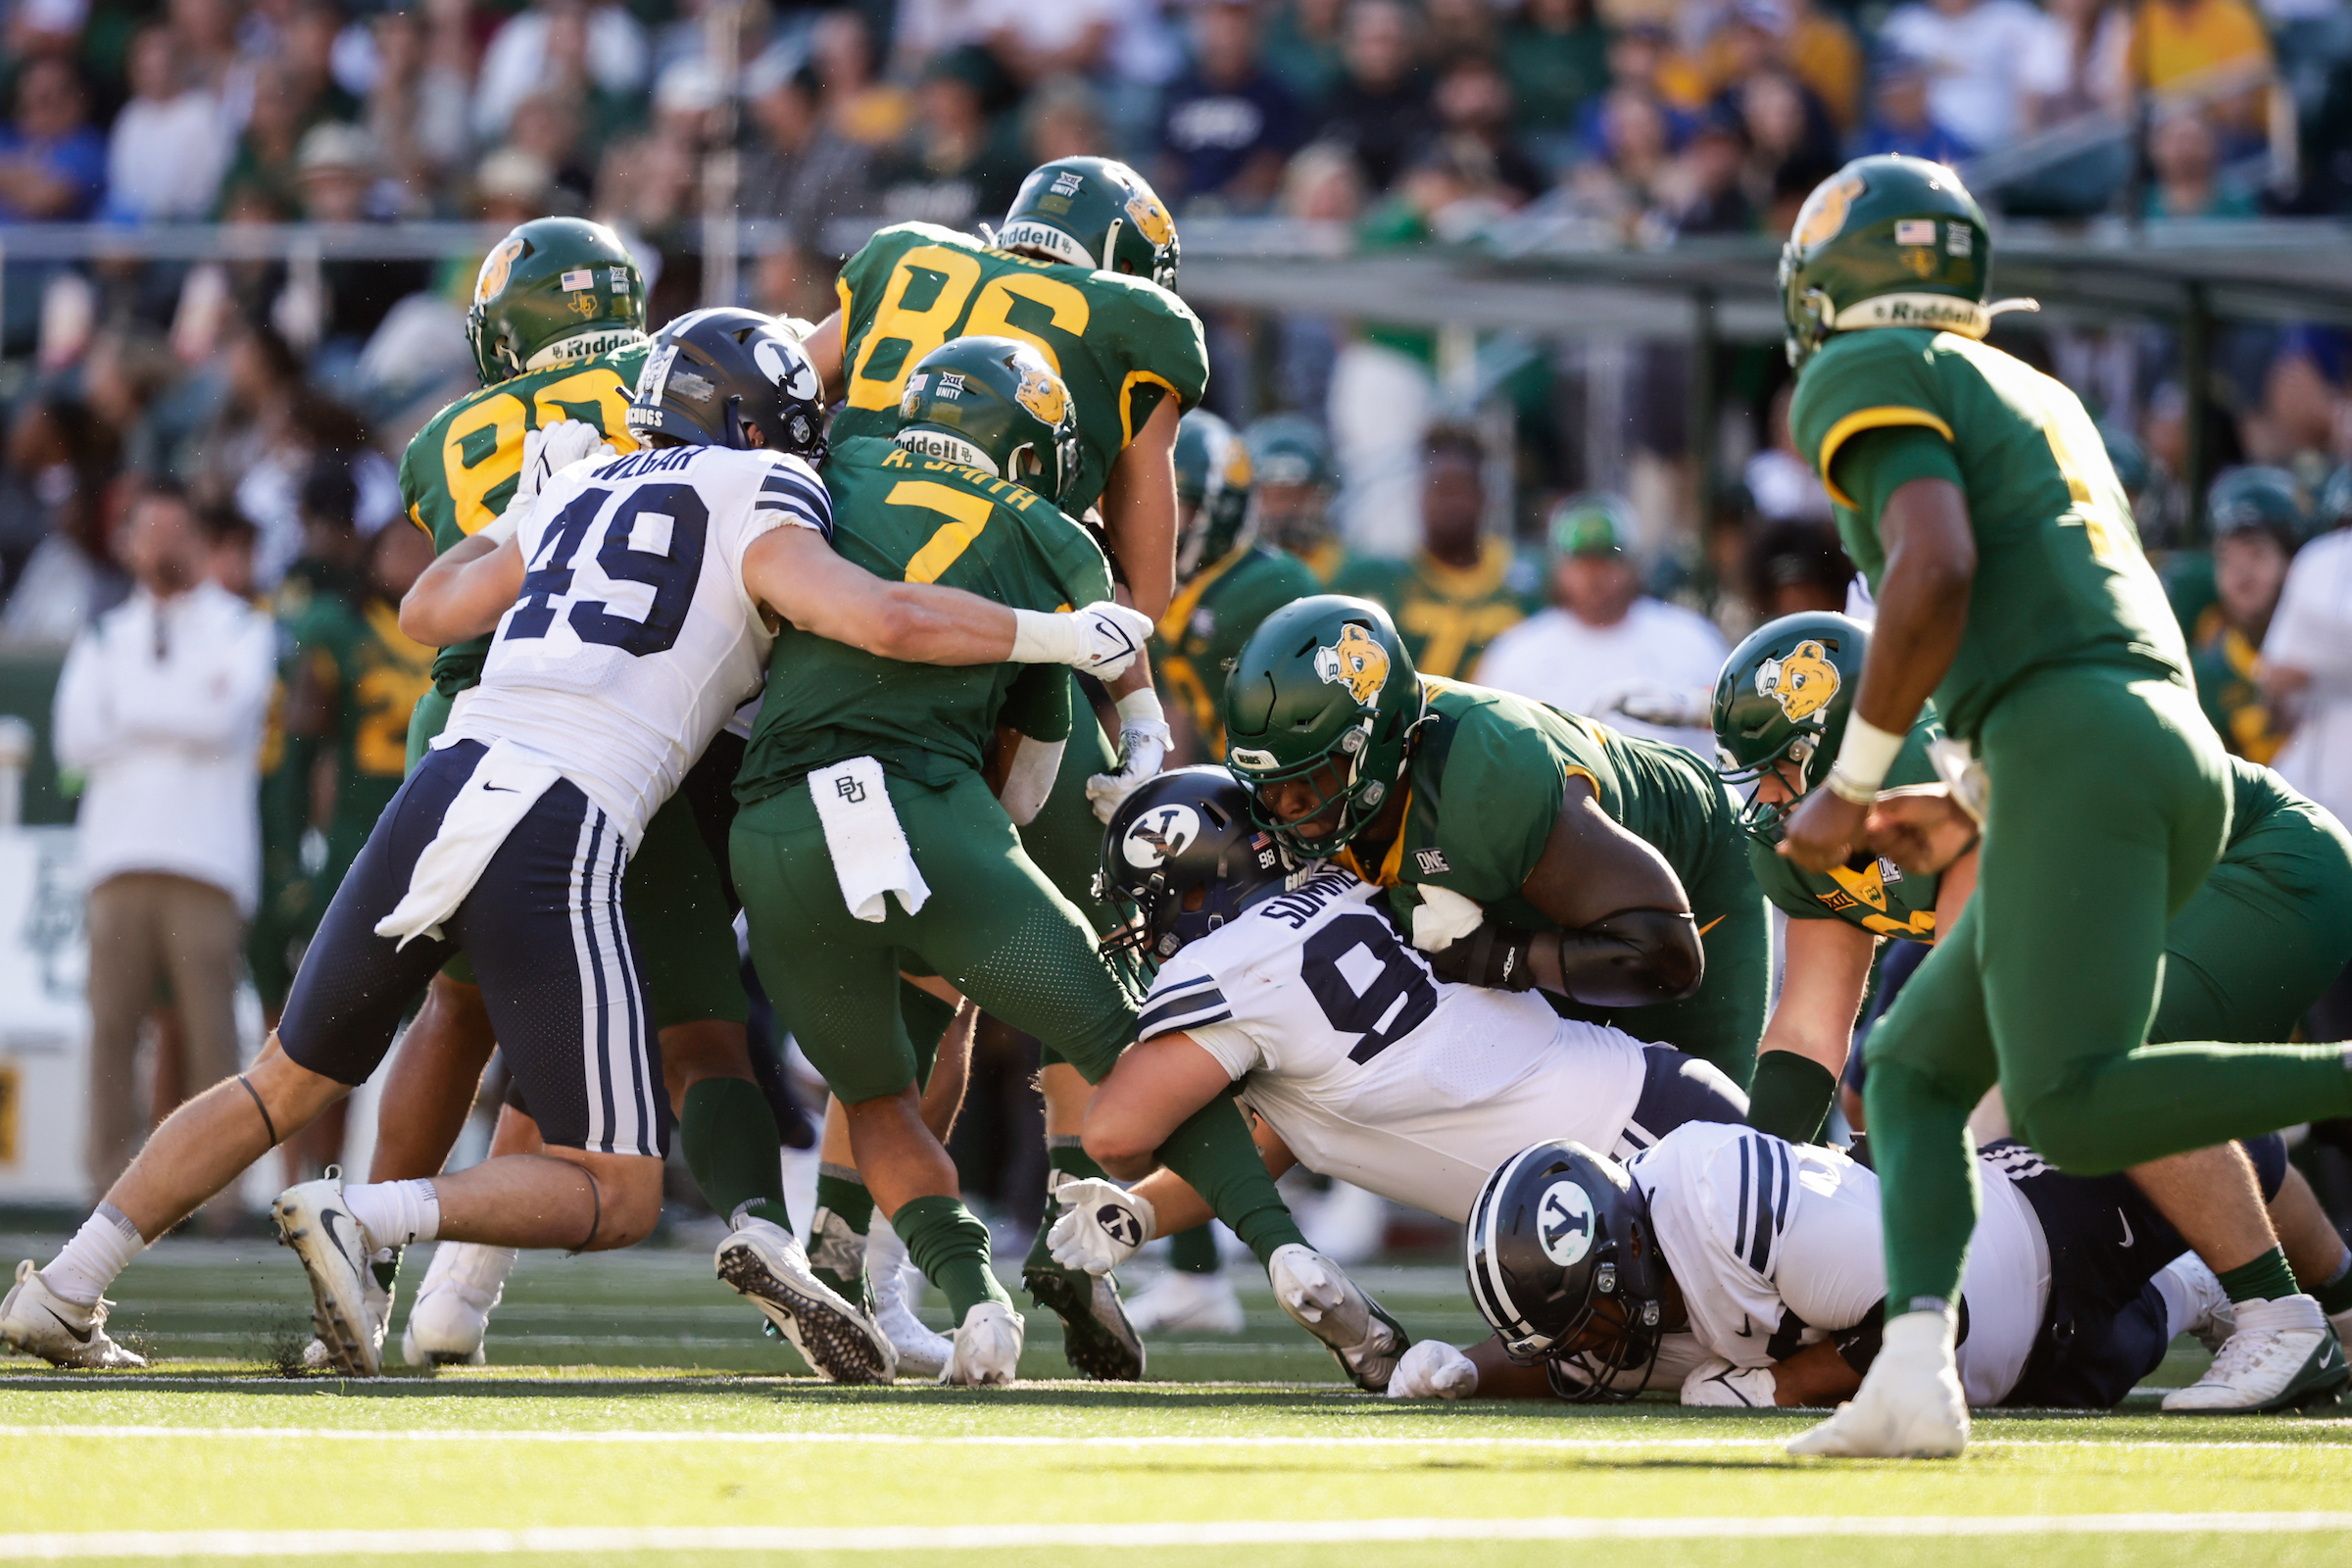 BYU linebacker Payton Wilgar makes a tackle during the Cougars' loss to Baylor in Waco, Texas, on Saturday, Oct. 16, 2021.